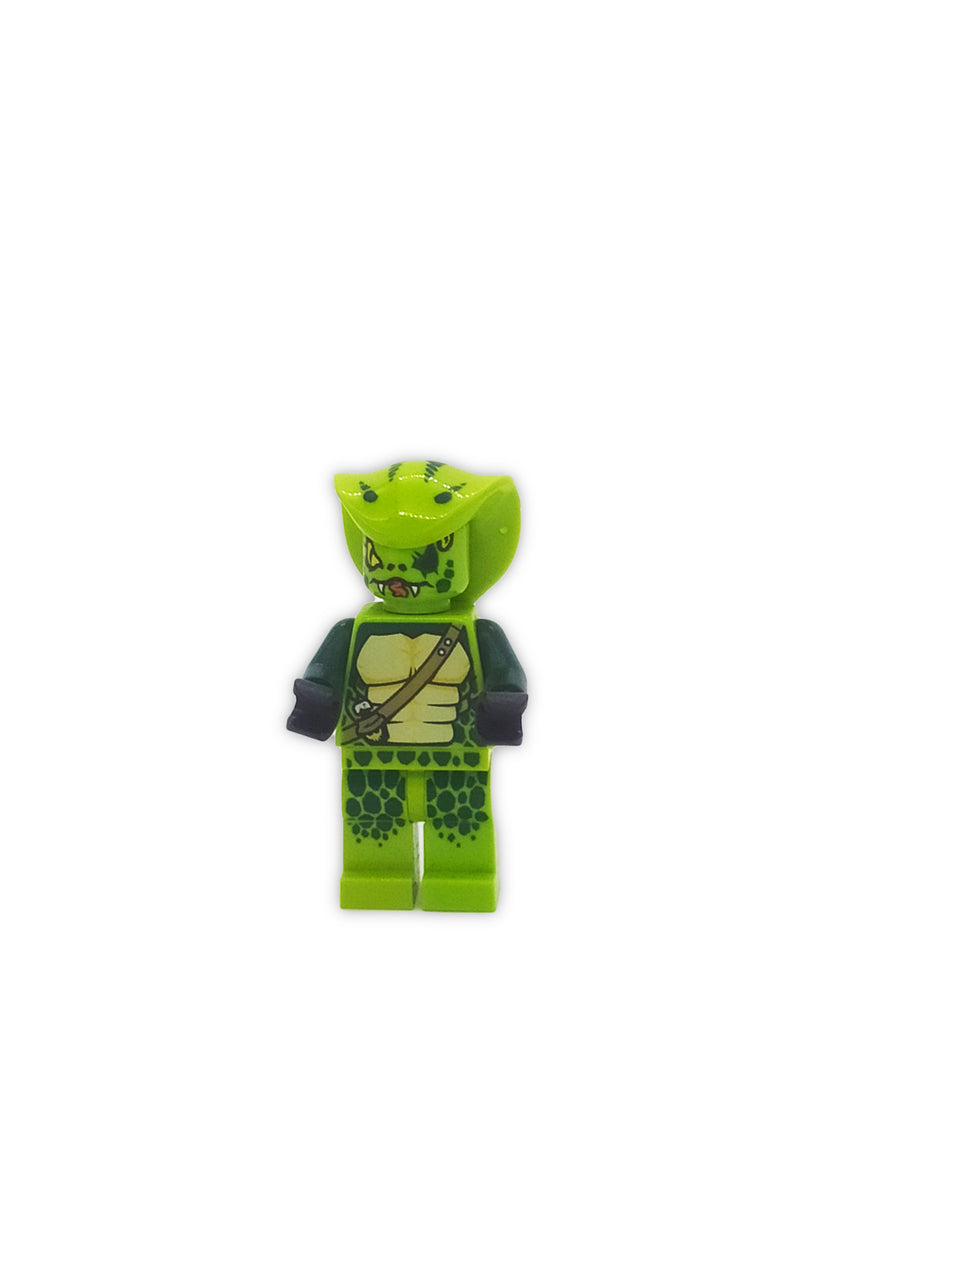 The Snake King - Ninjago Lego